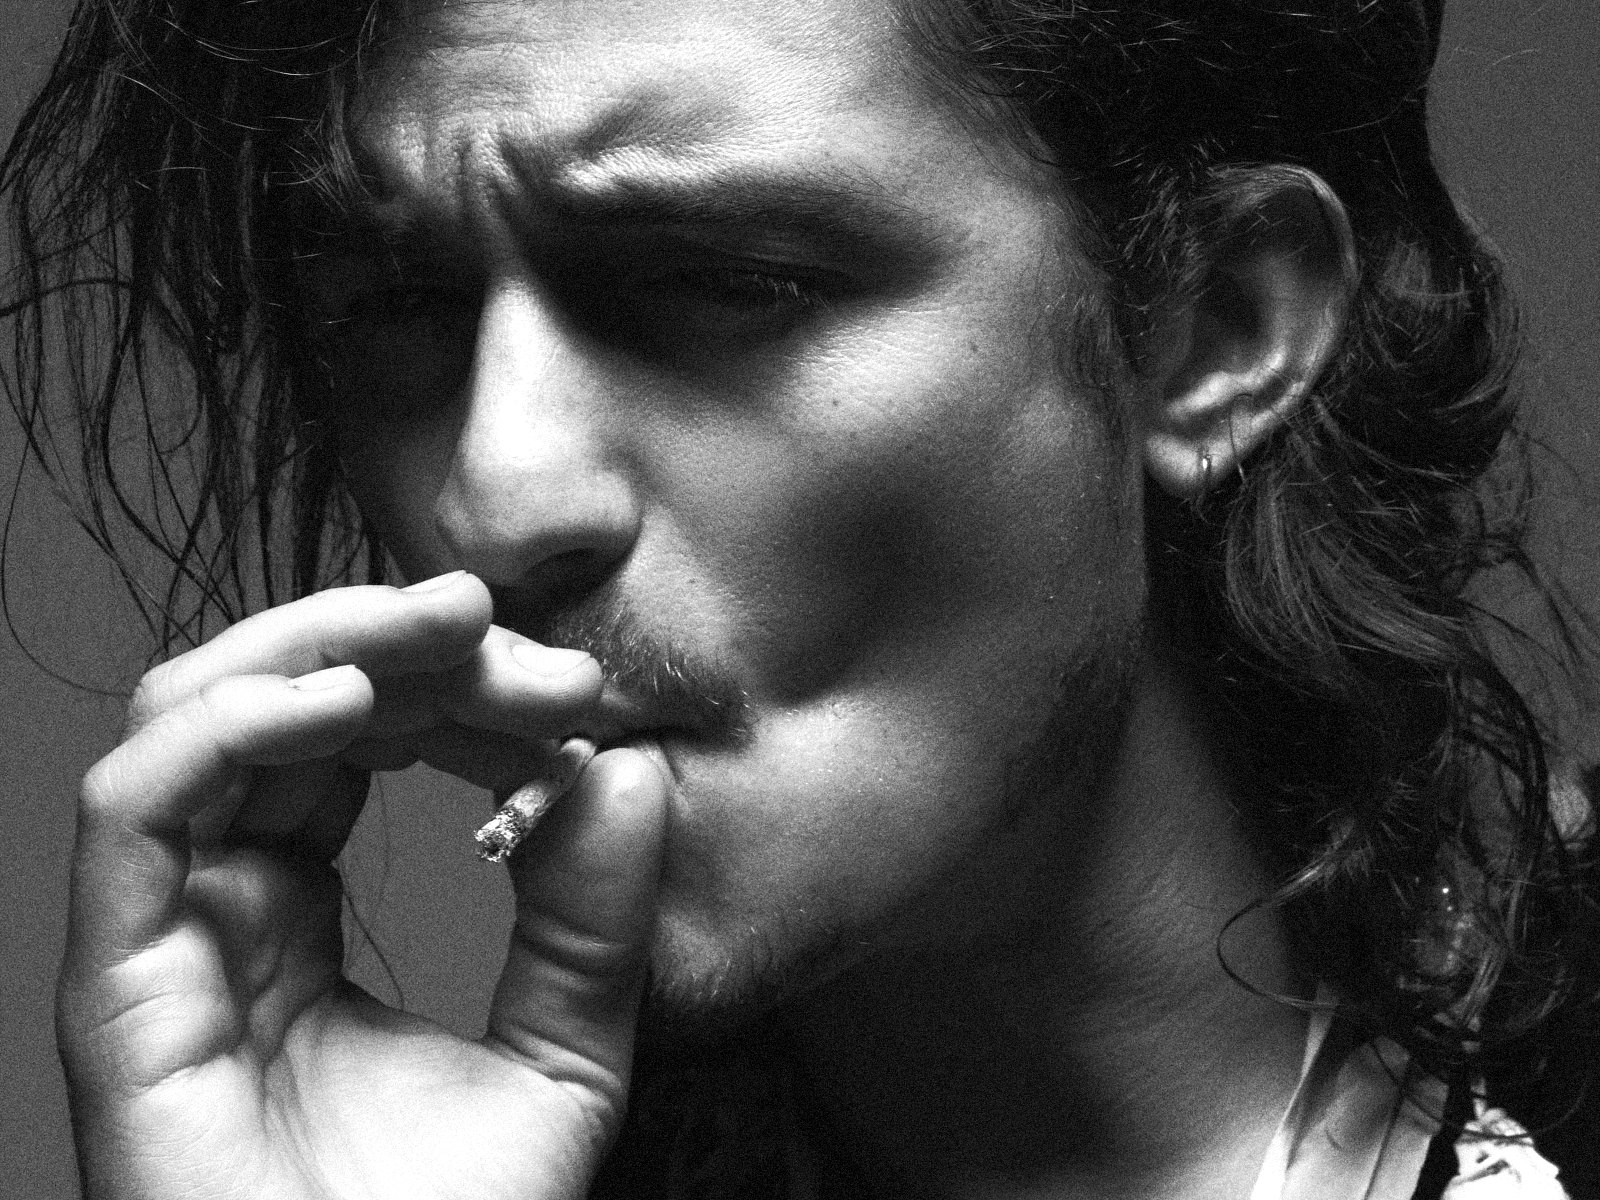 Orlando Bloom Wallpaper 2013 Orlando Bloom Desktop ...